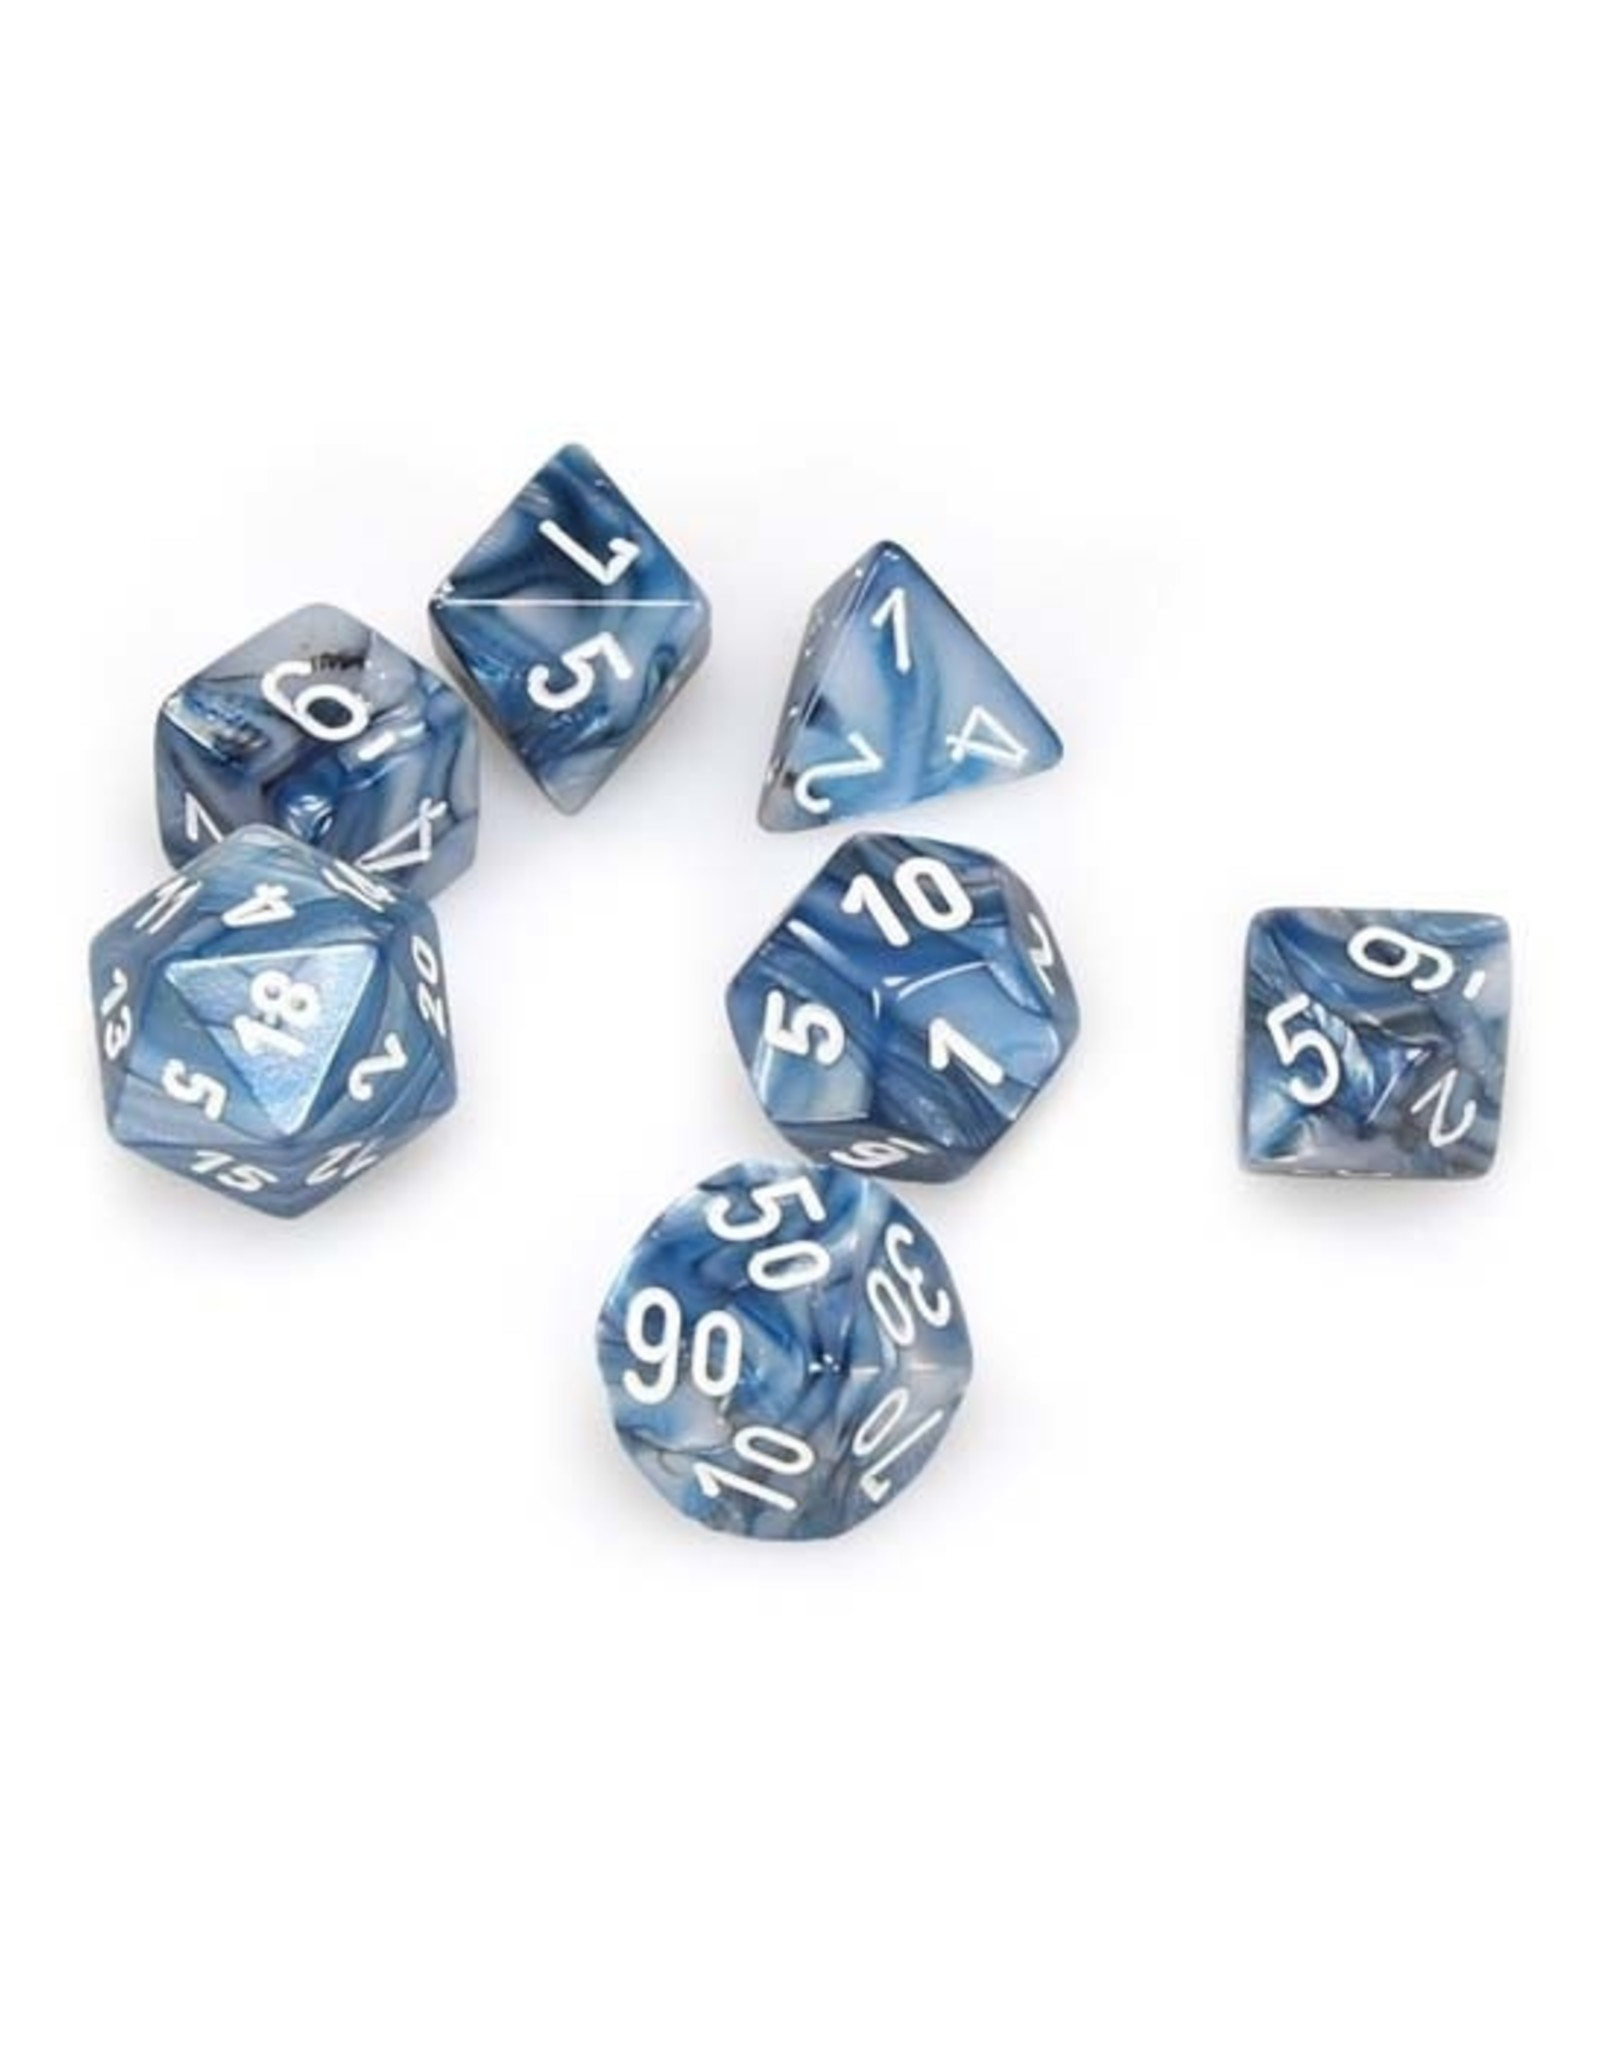 Chessex Chessex: Poly 7 Set - Lustrous - Slate w/ White